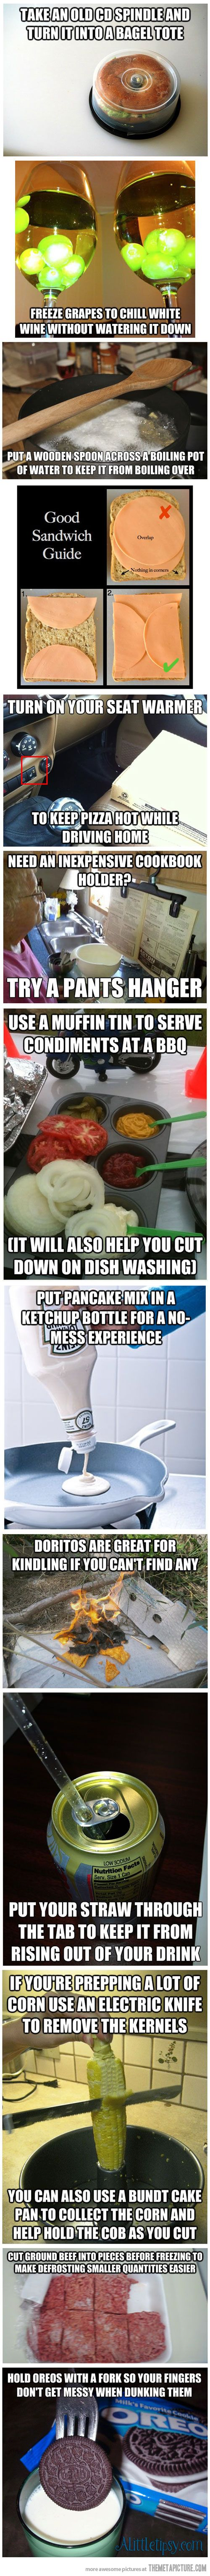 More Life hacks - Food tips that make life easier.